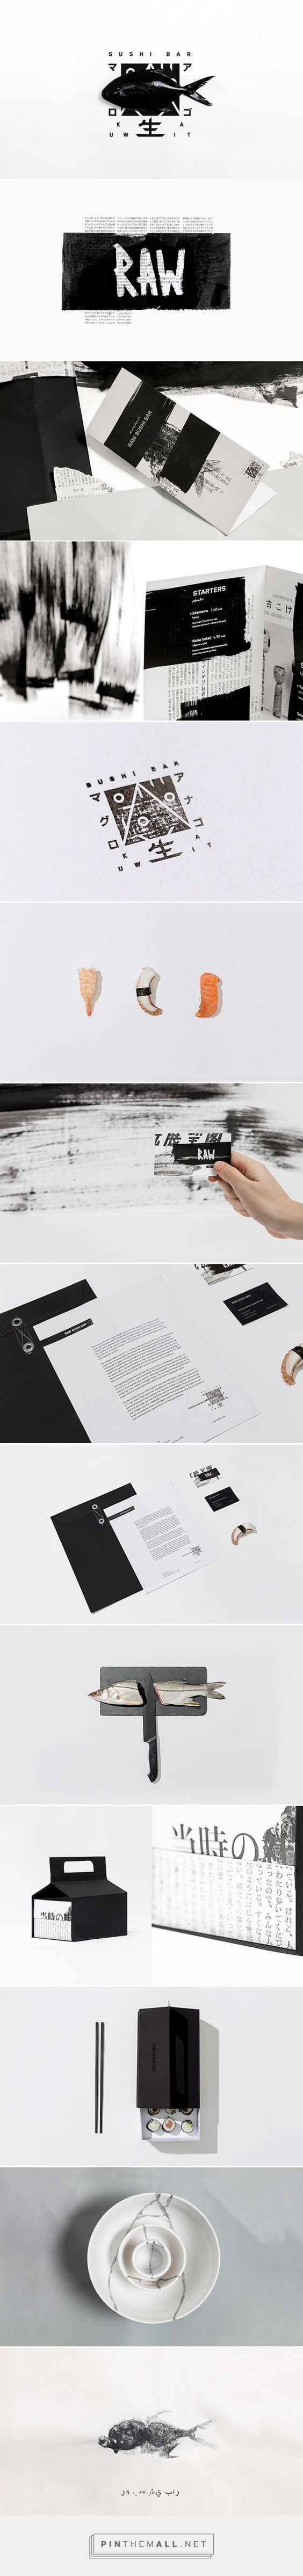 dans-ta-pub-creation-brand-identity-compilation-11